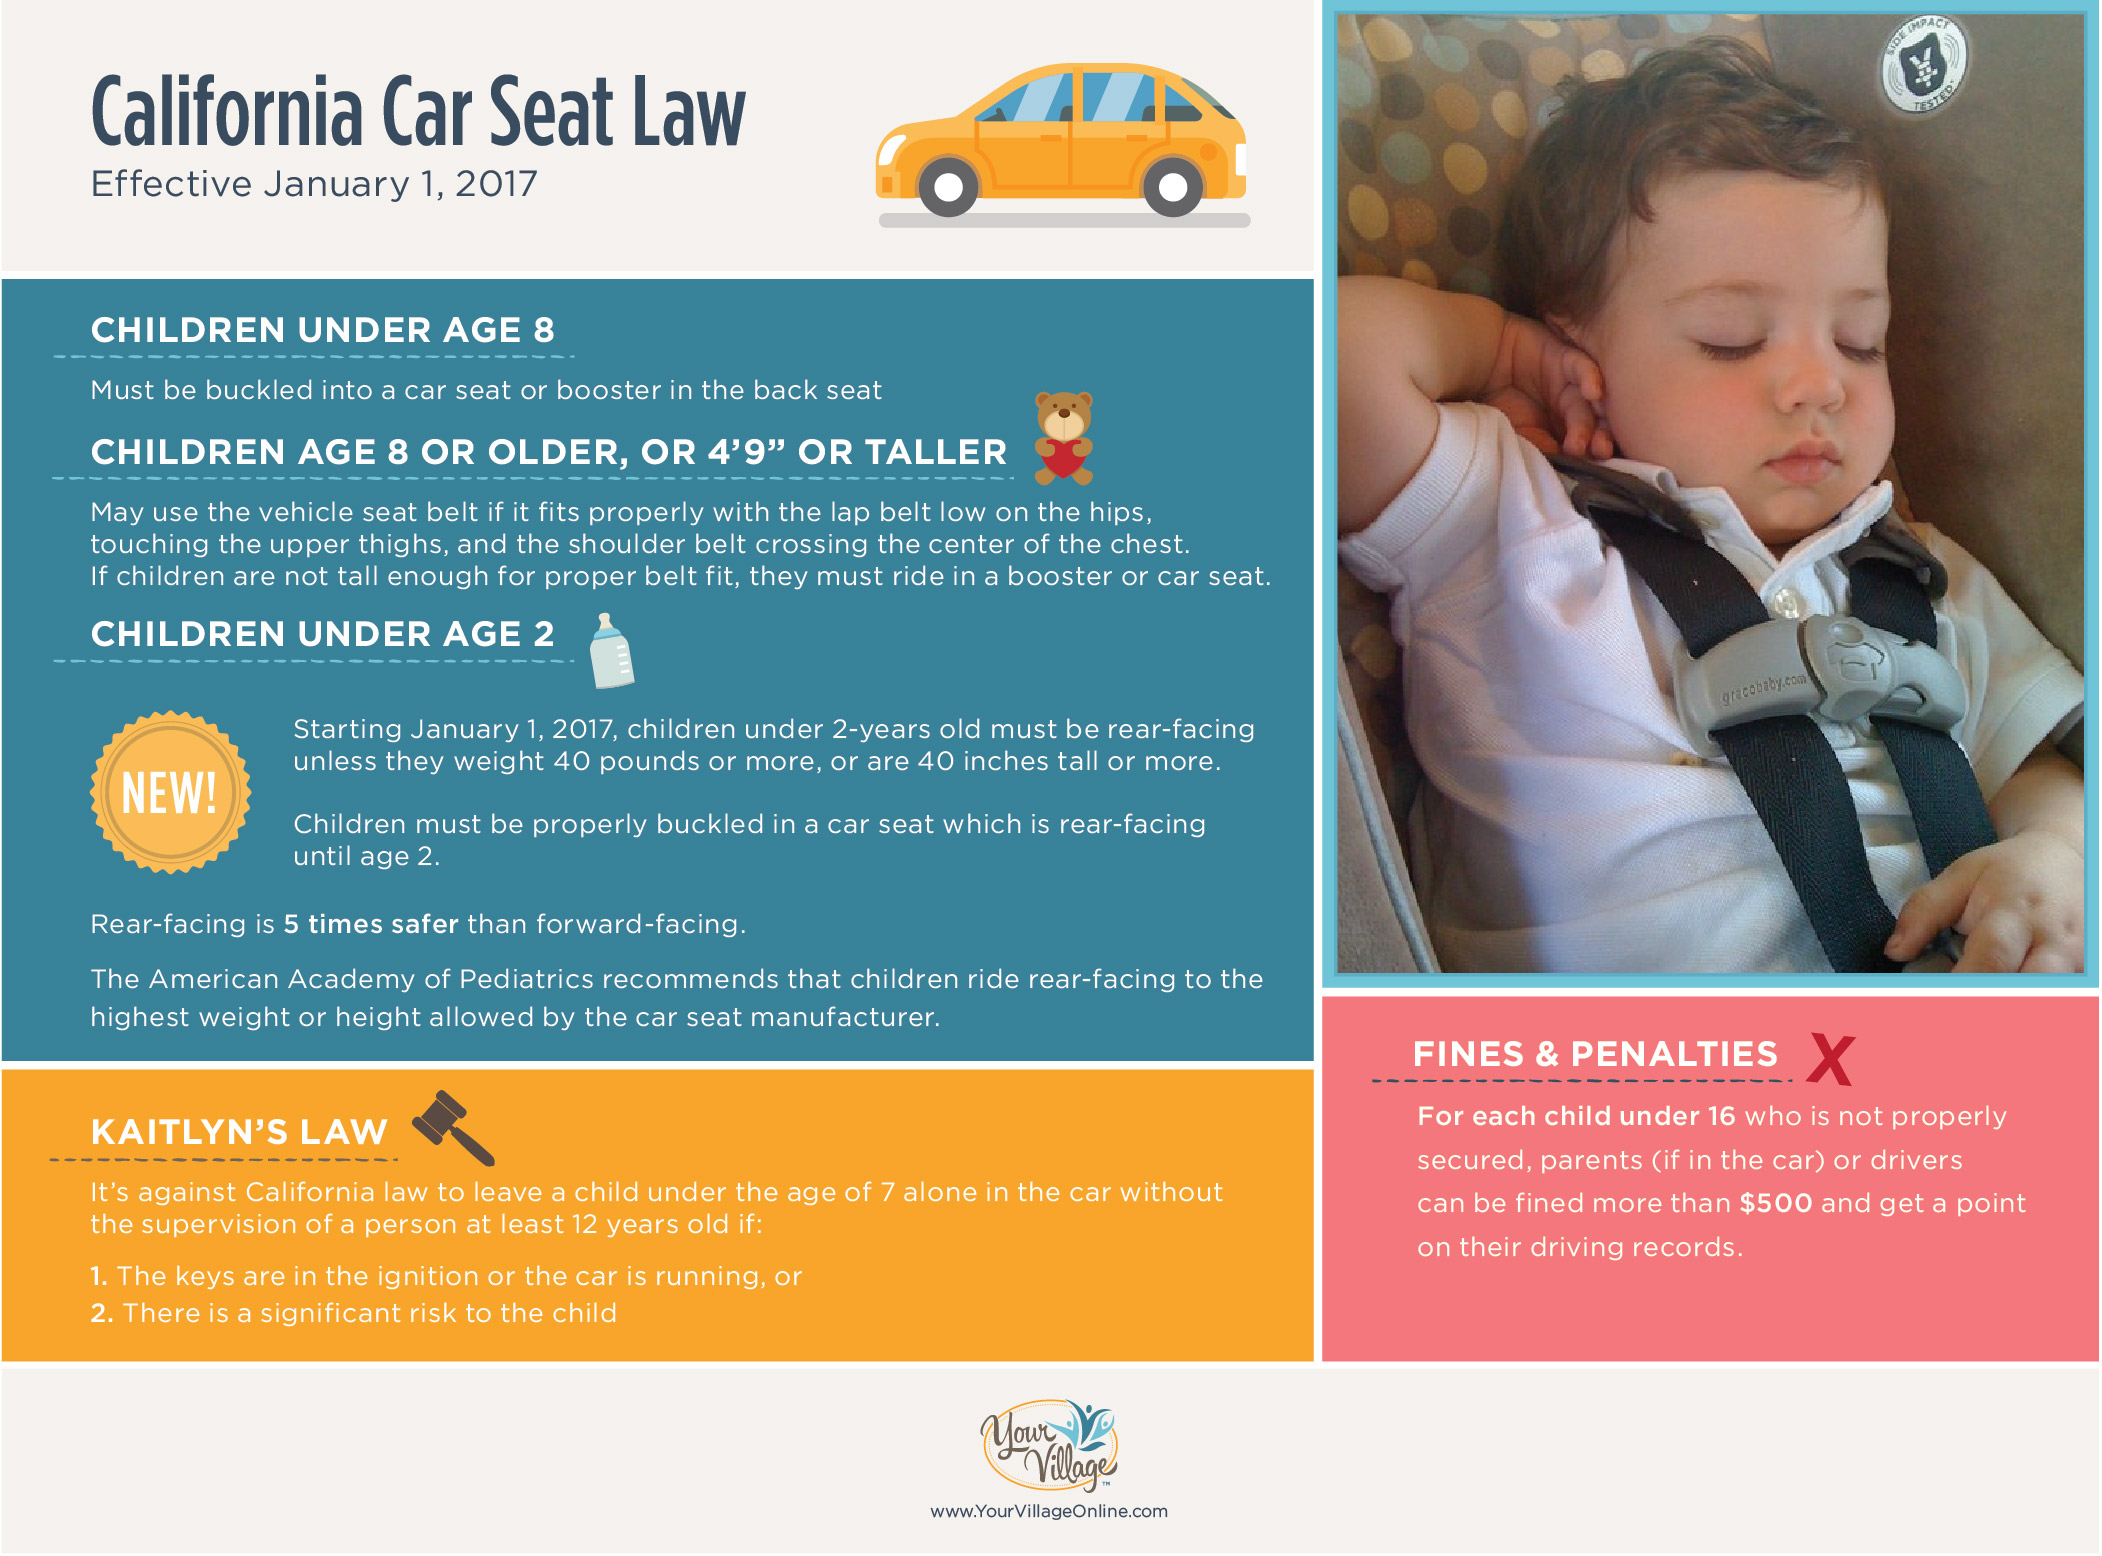 California Car Seat Law Booster Age